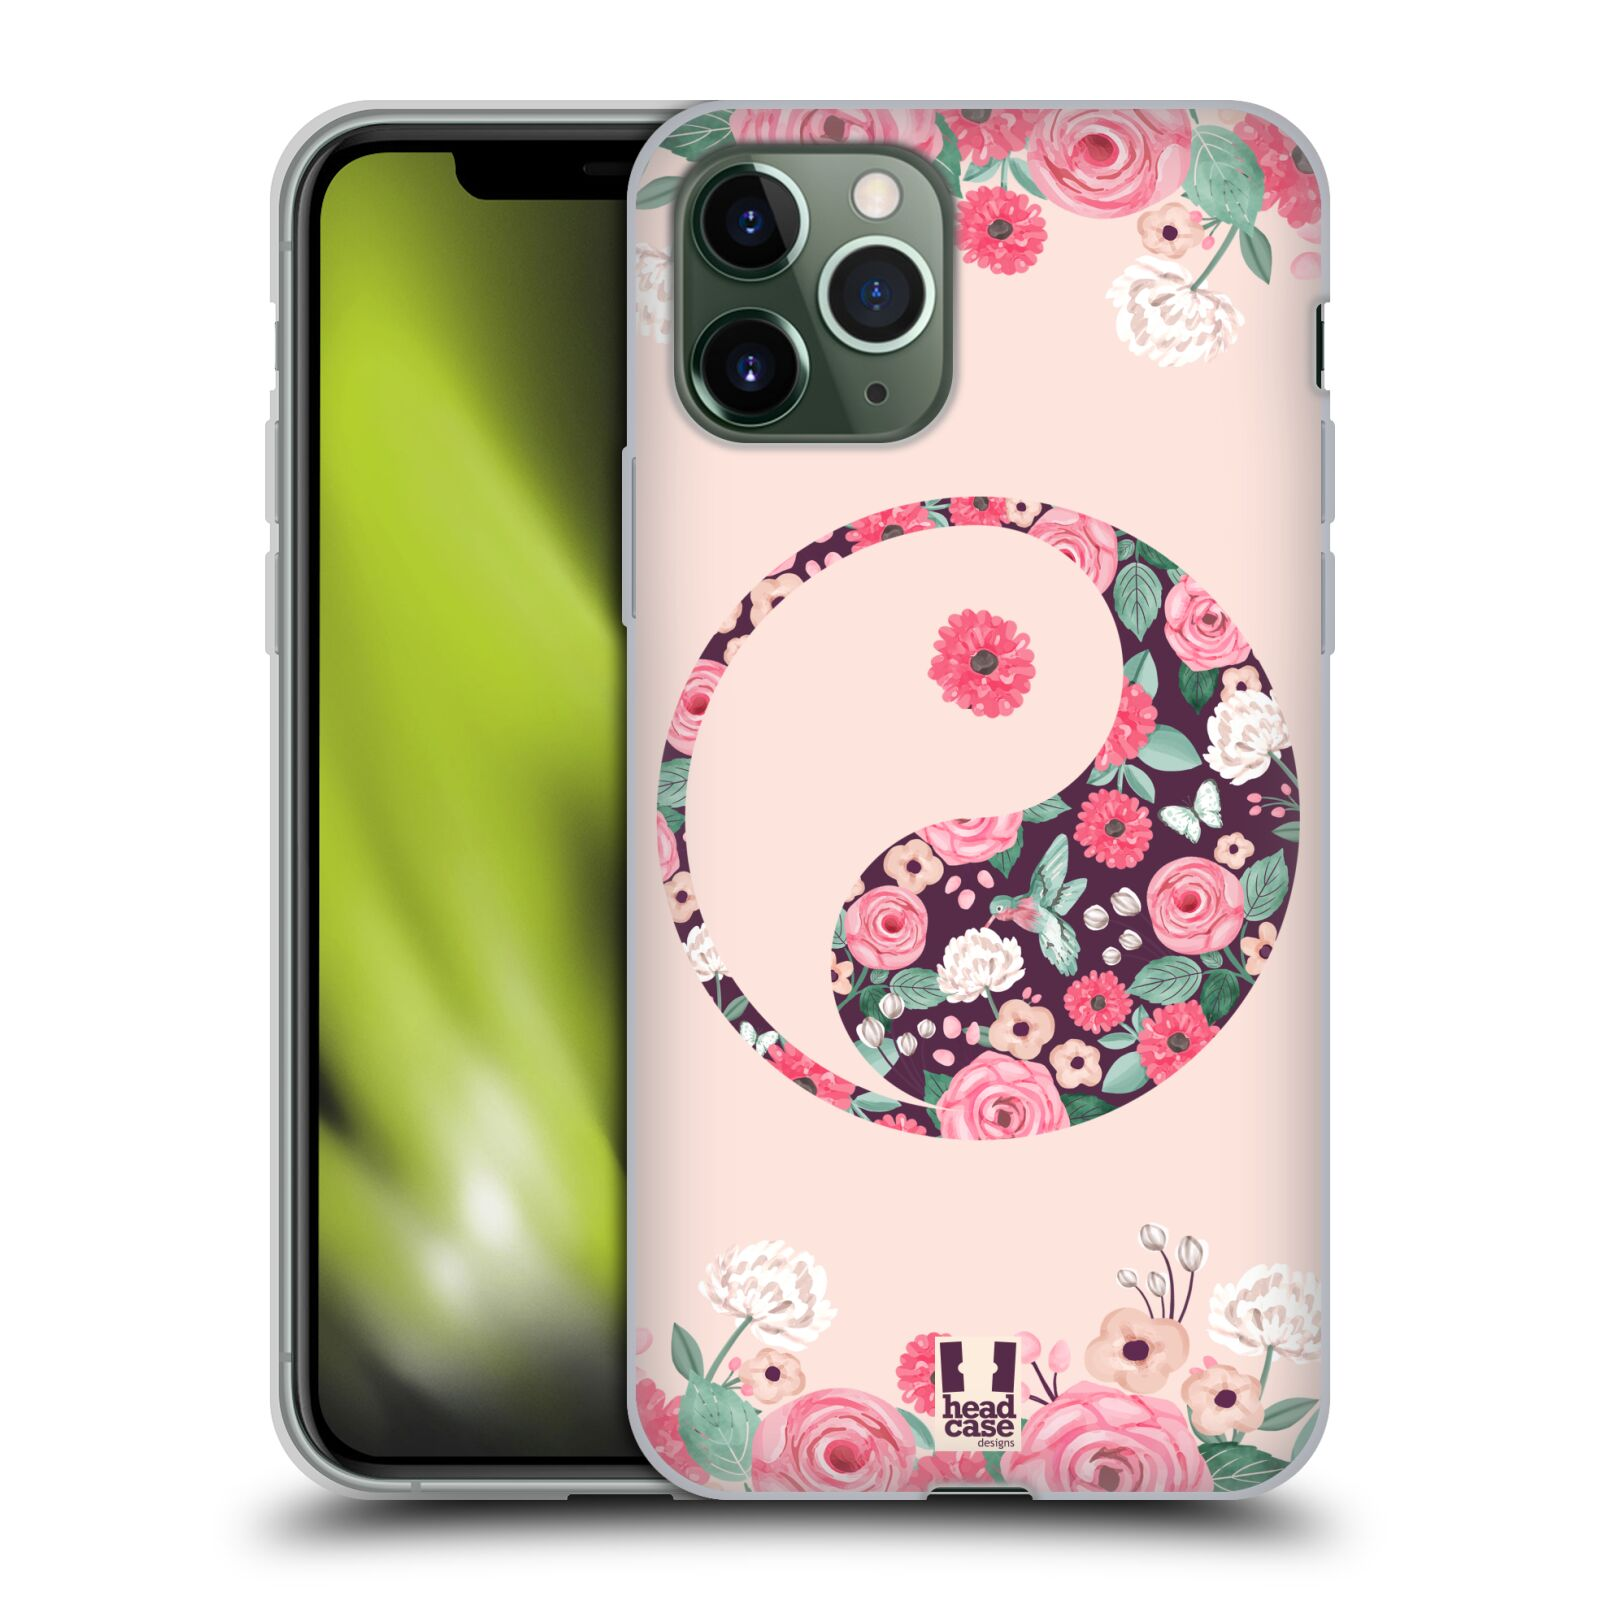 original kryt na iphone 8 plus , Silikonové pouzdro na mobil Apple iPhone 11 Pro - Head Case - Yin a Yang Floral